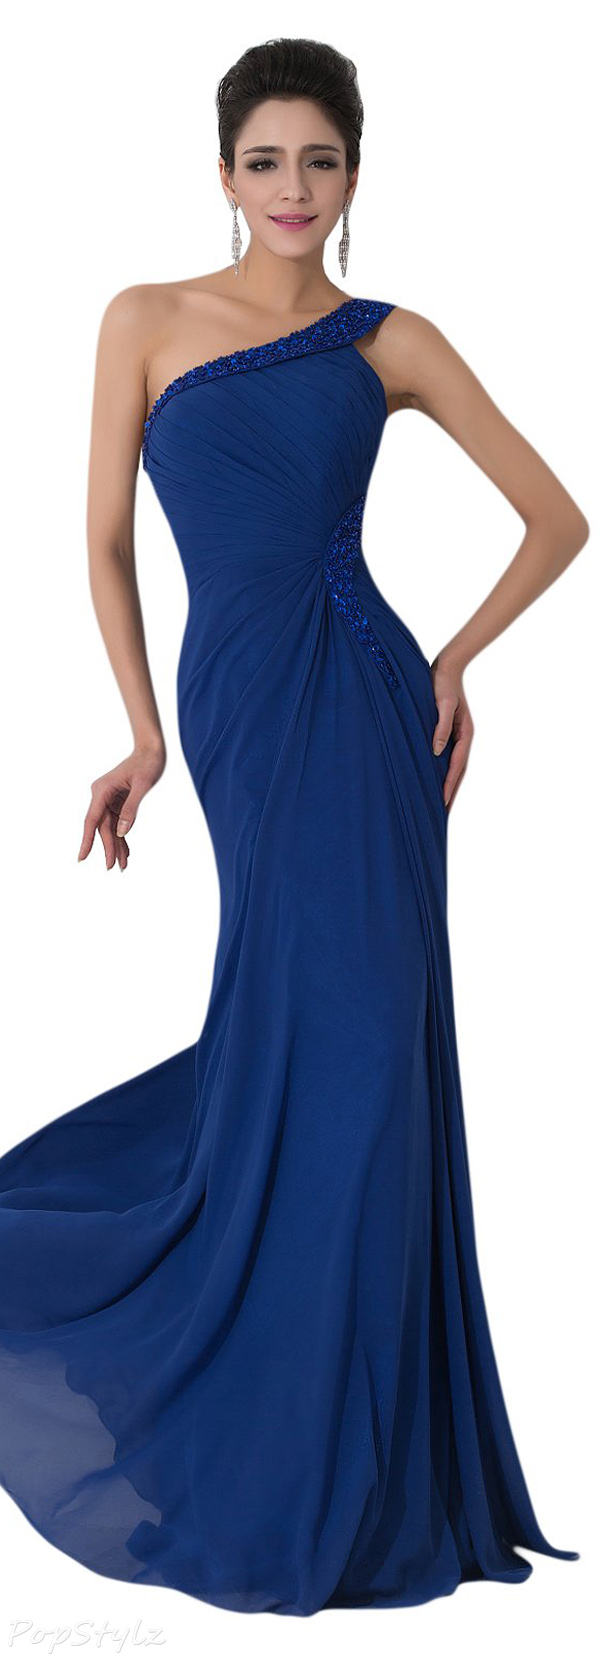 Sunvary Romantic Sequin One Shoulder Evening Gown